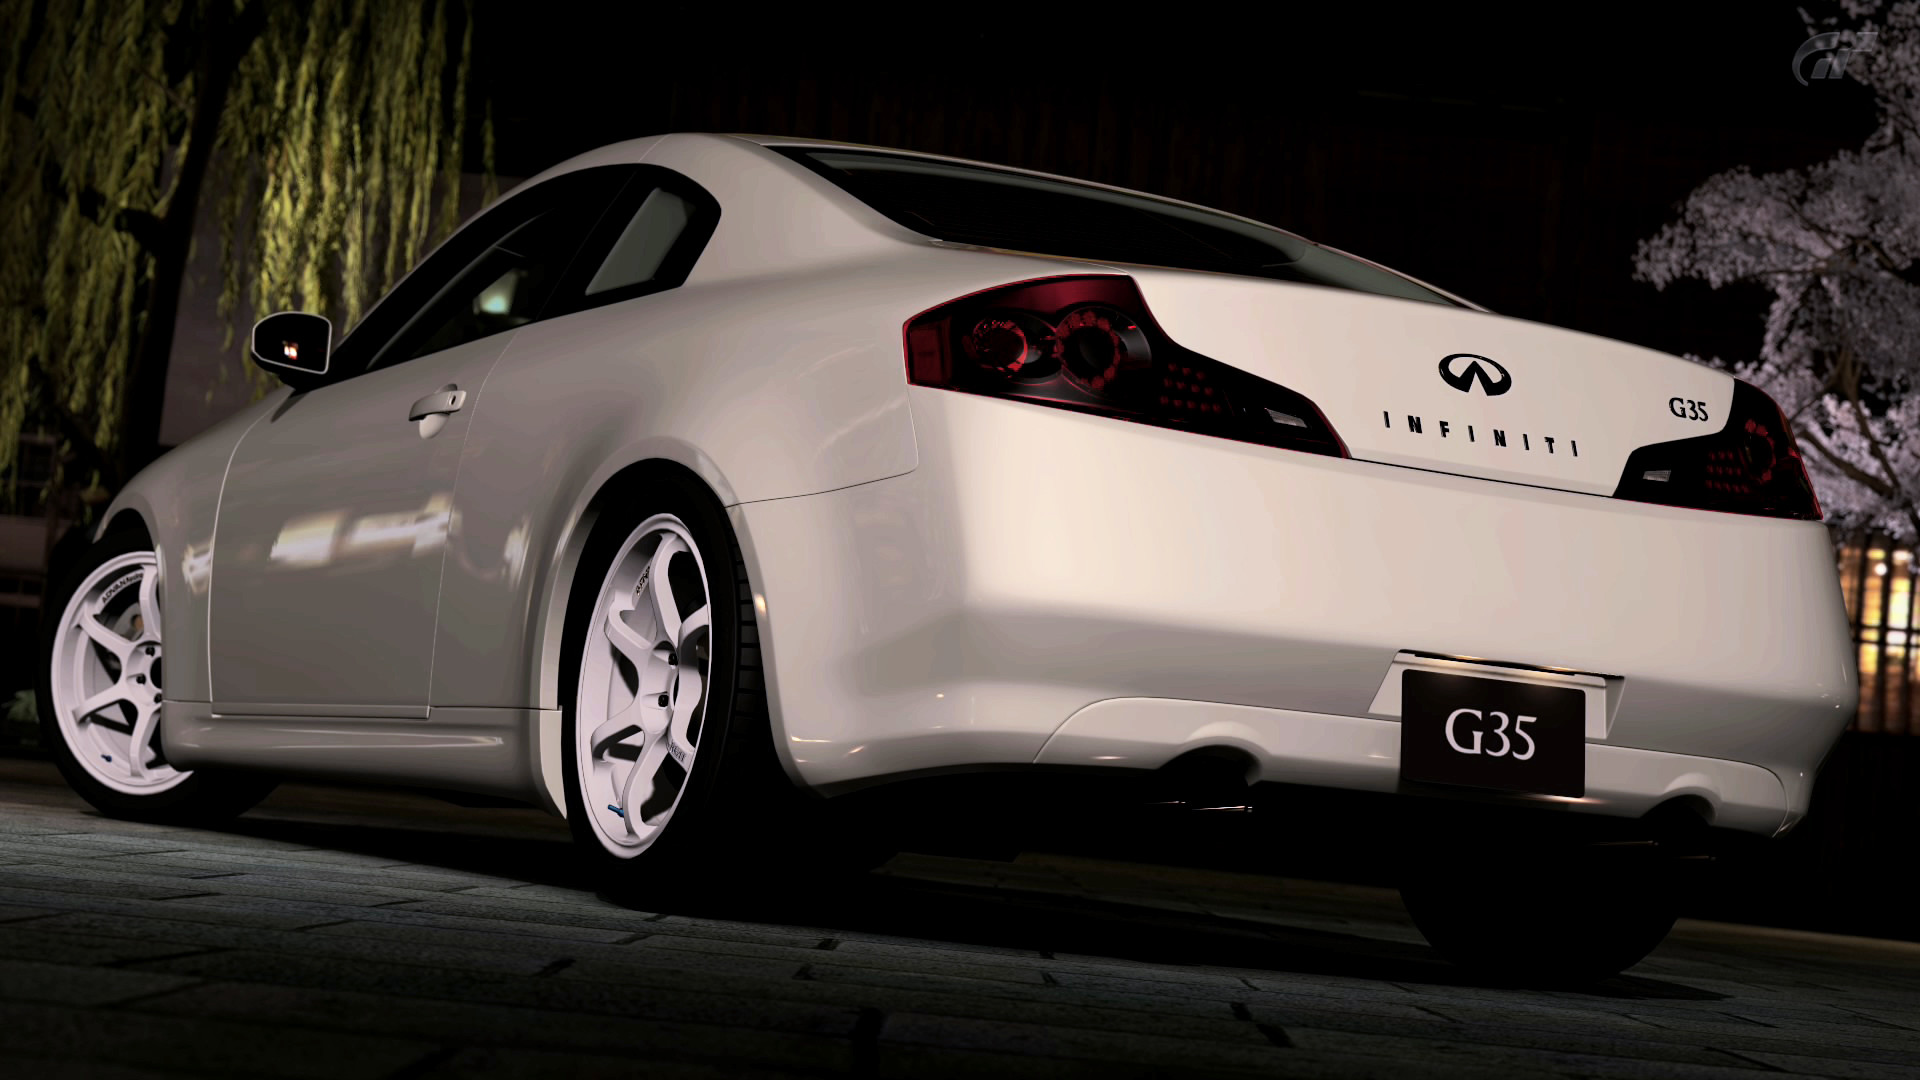 HotTrendsToday84977 Infiniti G35 Coupe 2013 Images